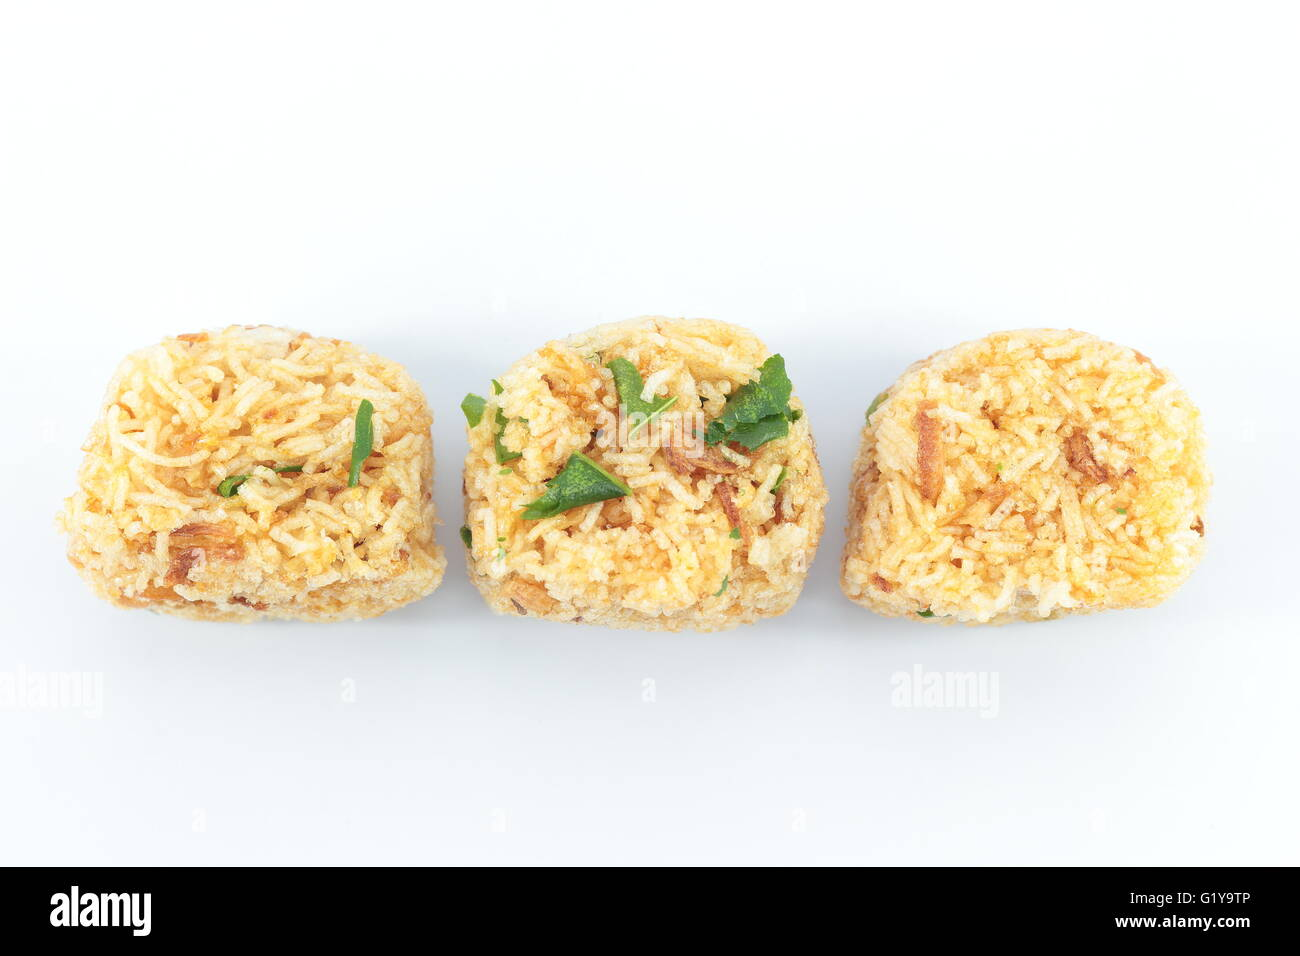 Fried rice noodle Snacks are available - Stock Image